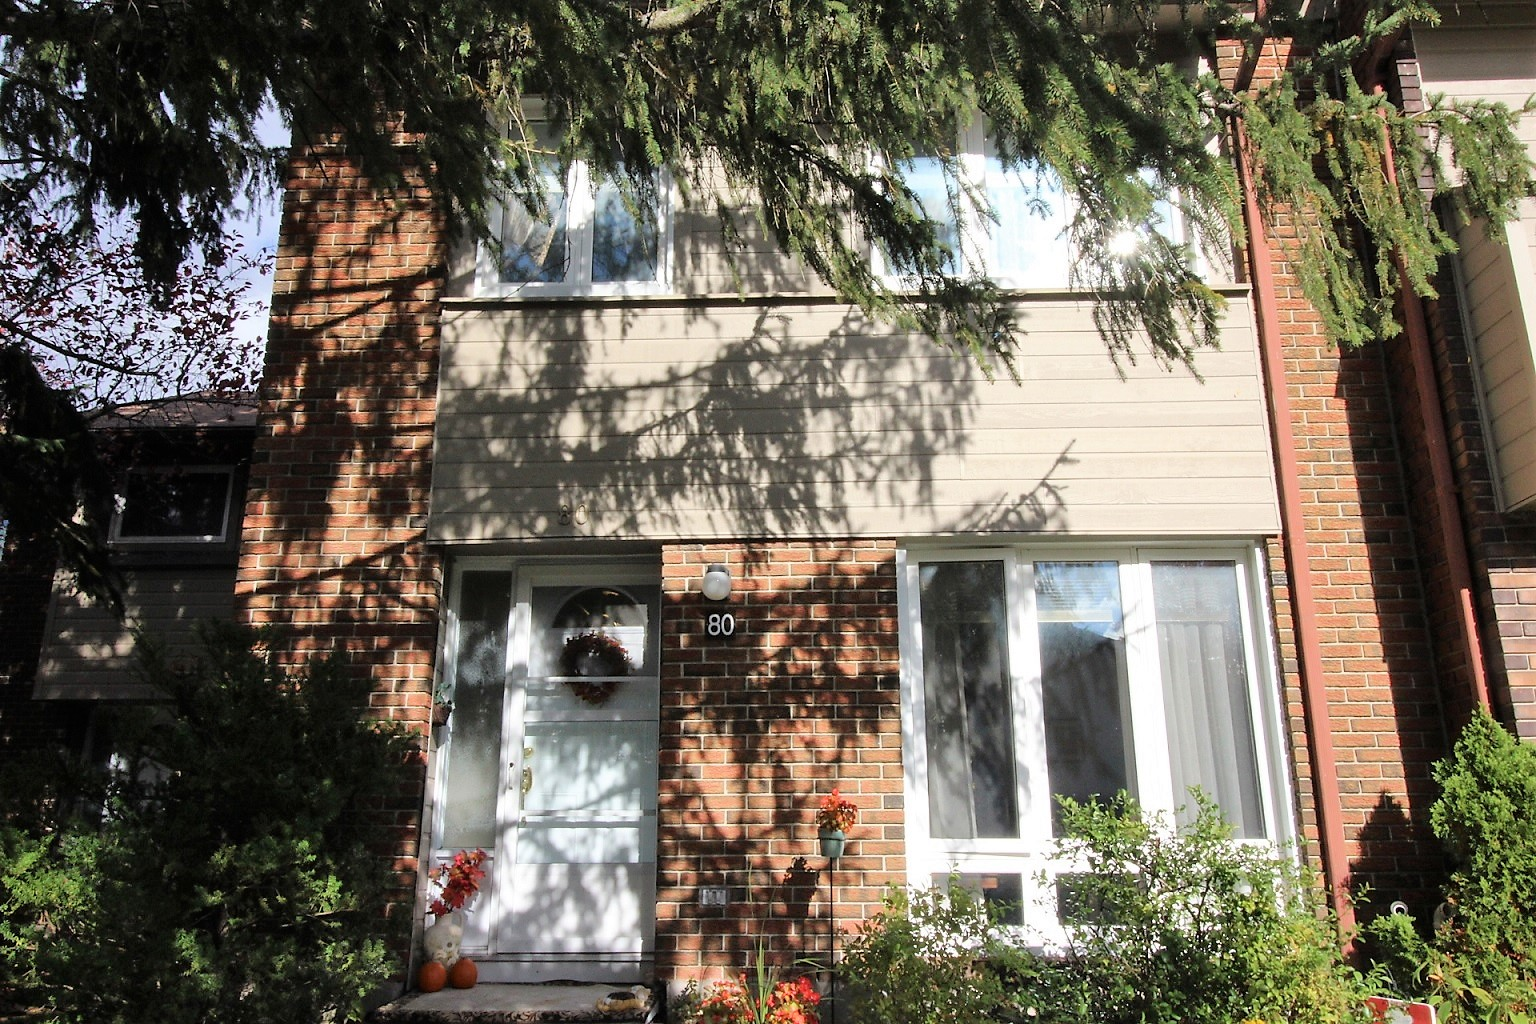 80-21 Midland Cres - 4 Bedroom Townhouse with Fully Finished Basement in Arlington Woods!